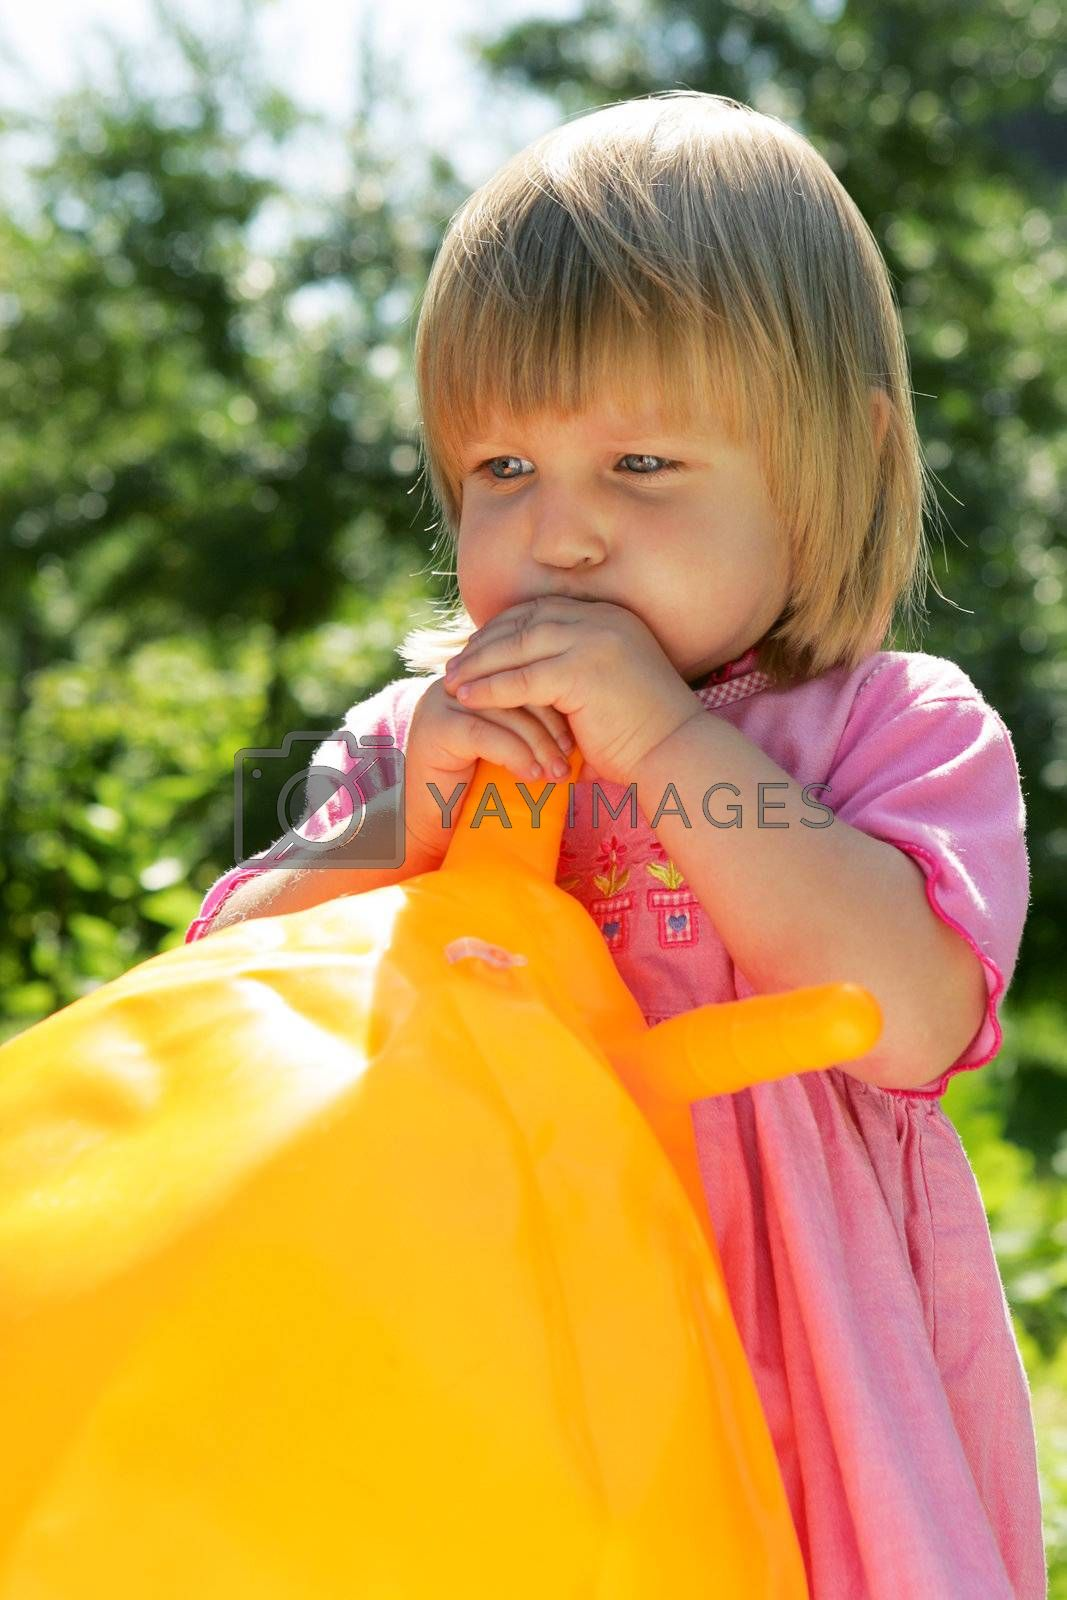 The girl inflates a ball